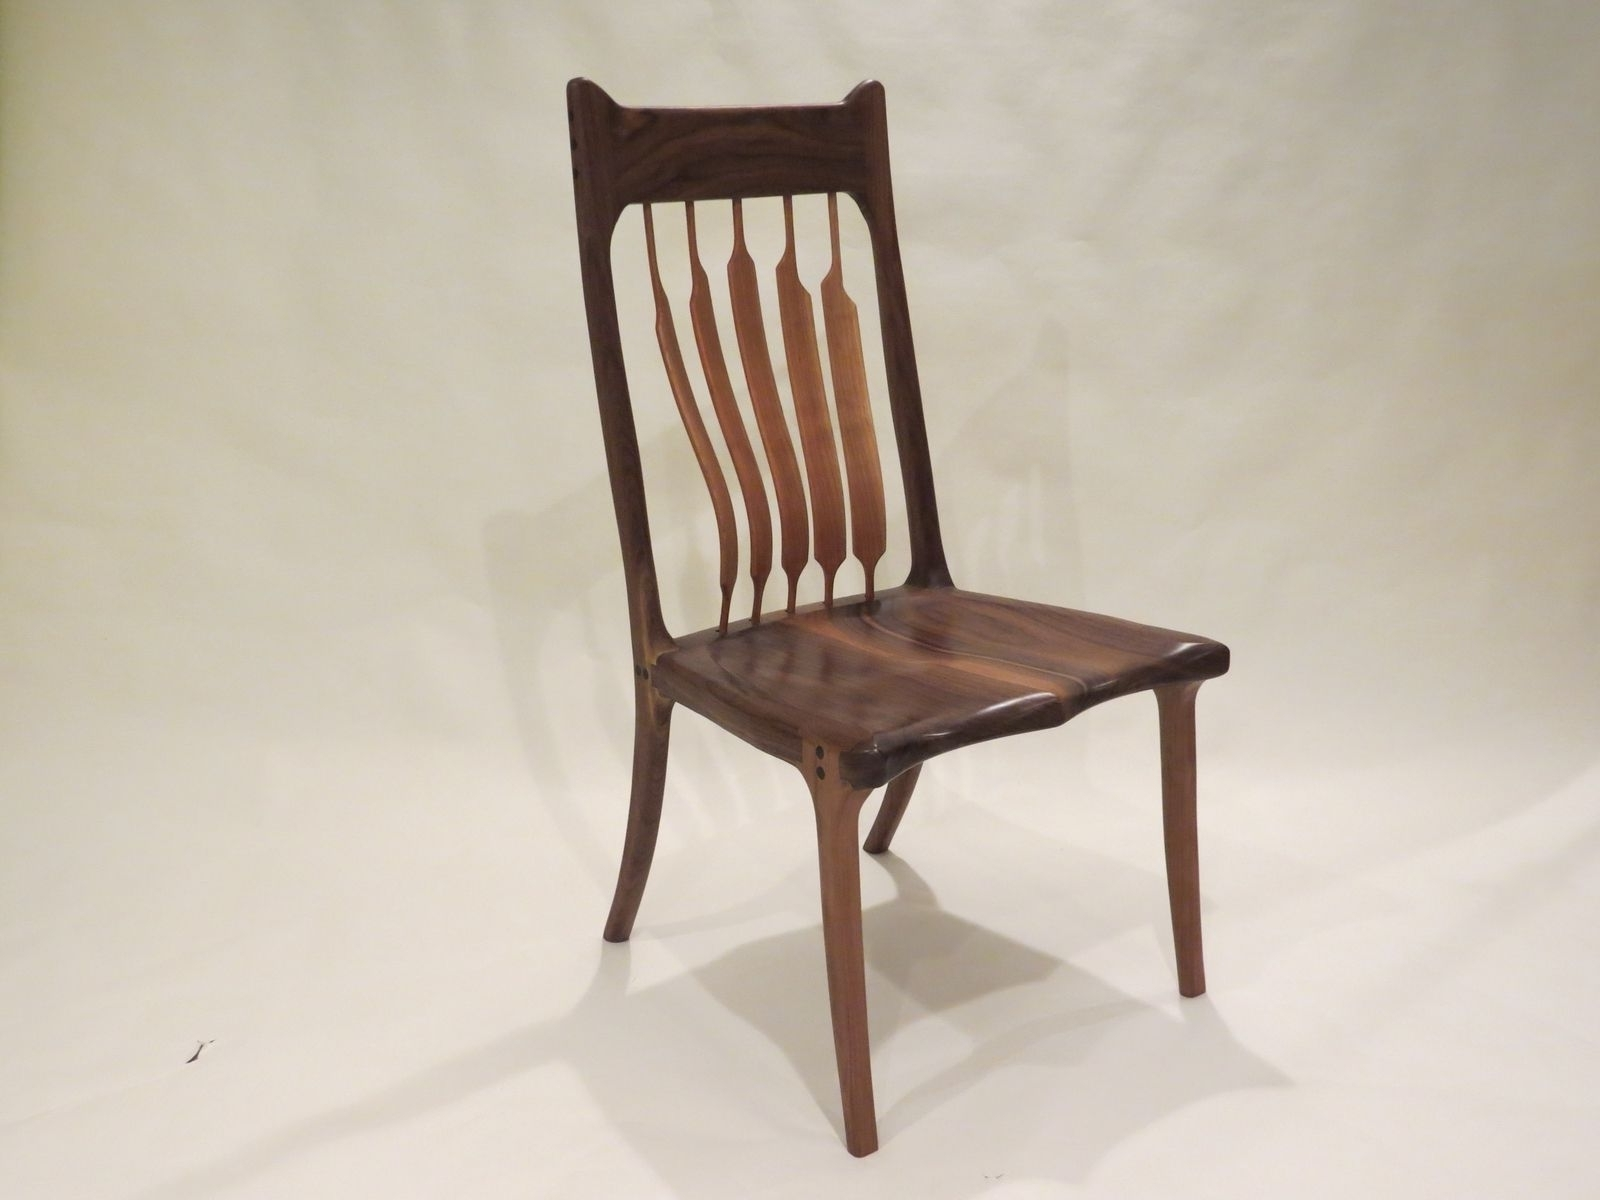 Buy A Custom High Back Dining Chair, Made To Order From Lost Creek For Newest High Back Dining Chairs (Gallery 18 of 25)